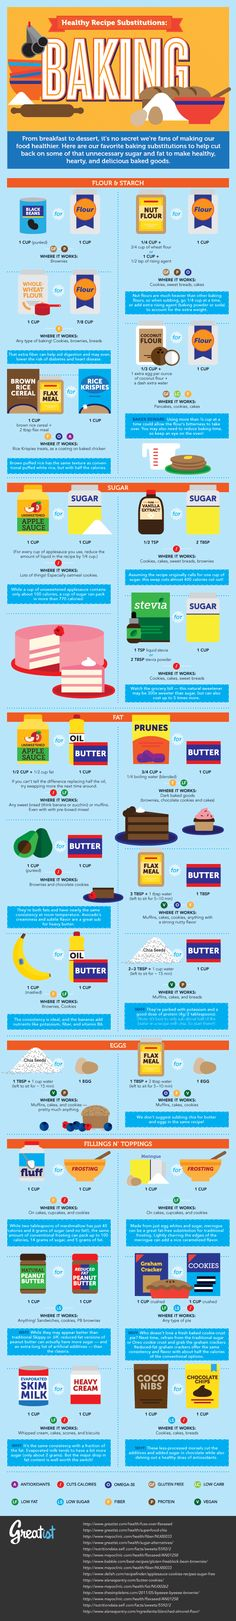 The Ultimate Guide to Healthier Baking [Infographic] | Greatist